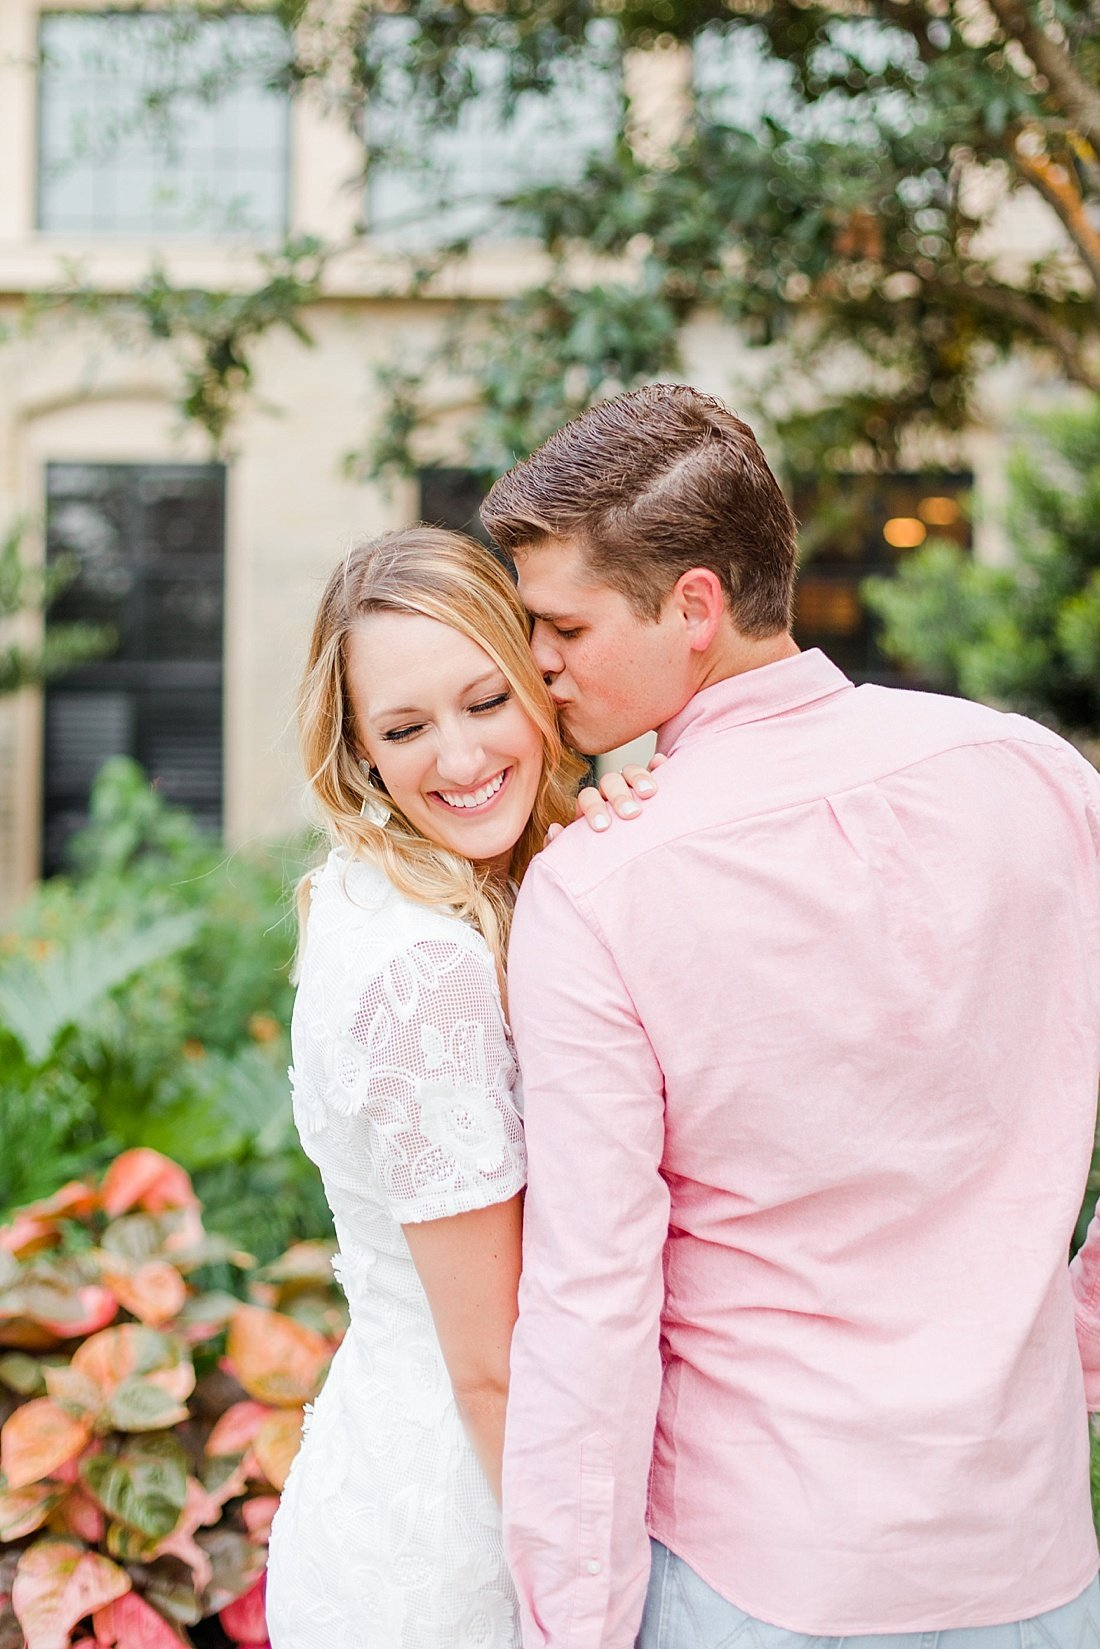 Pearl Stable Hotel Emma Engagement Session by San Antonio Wedding Photographer Allison Jeffers_0047